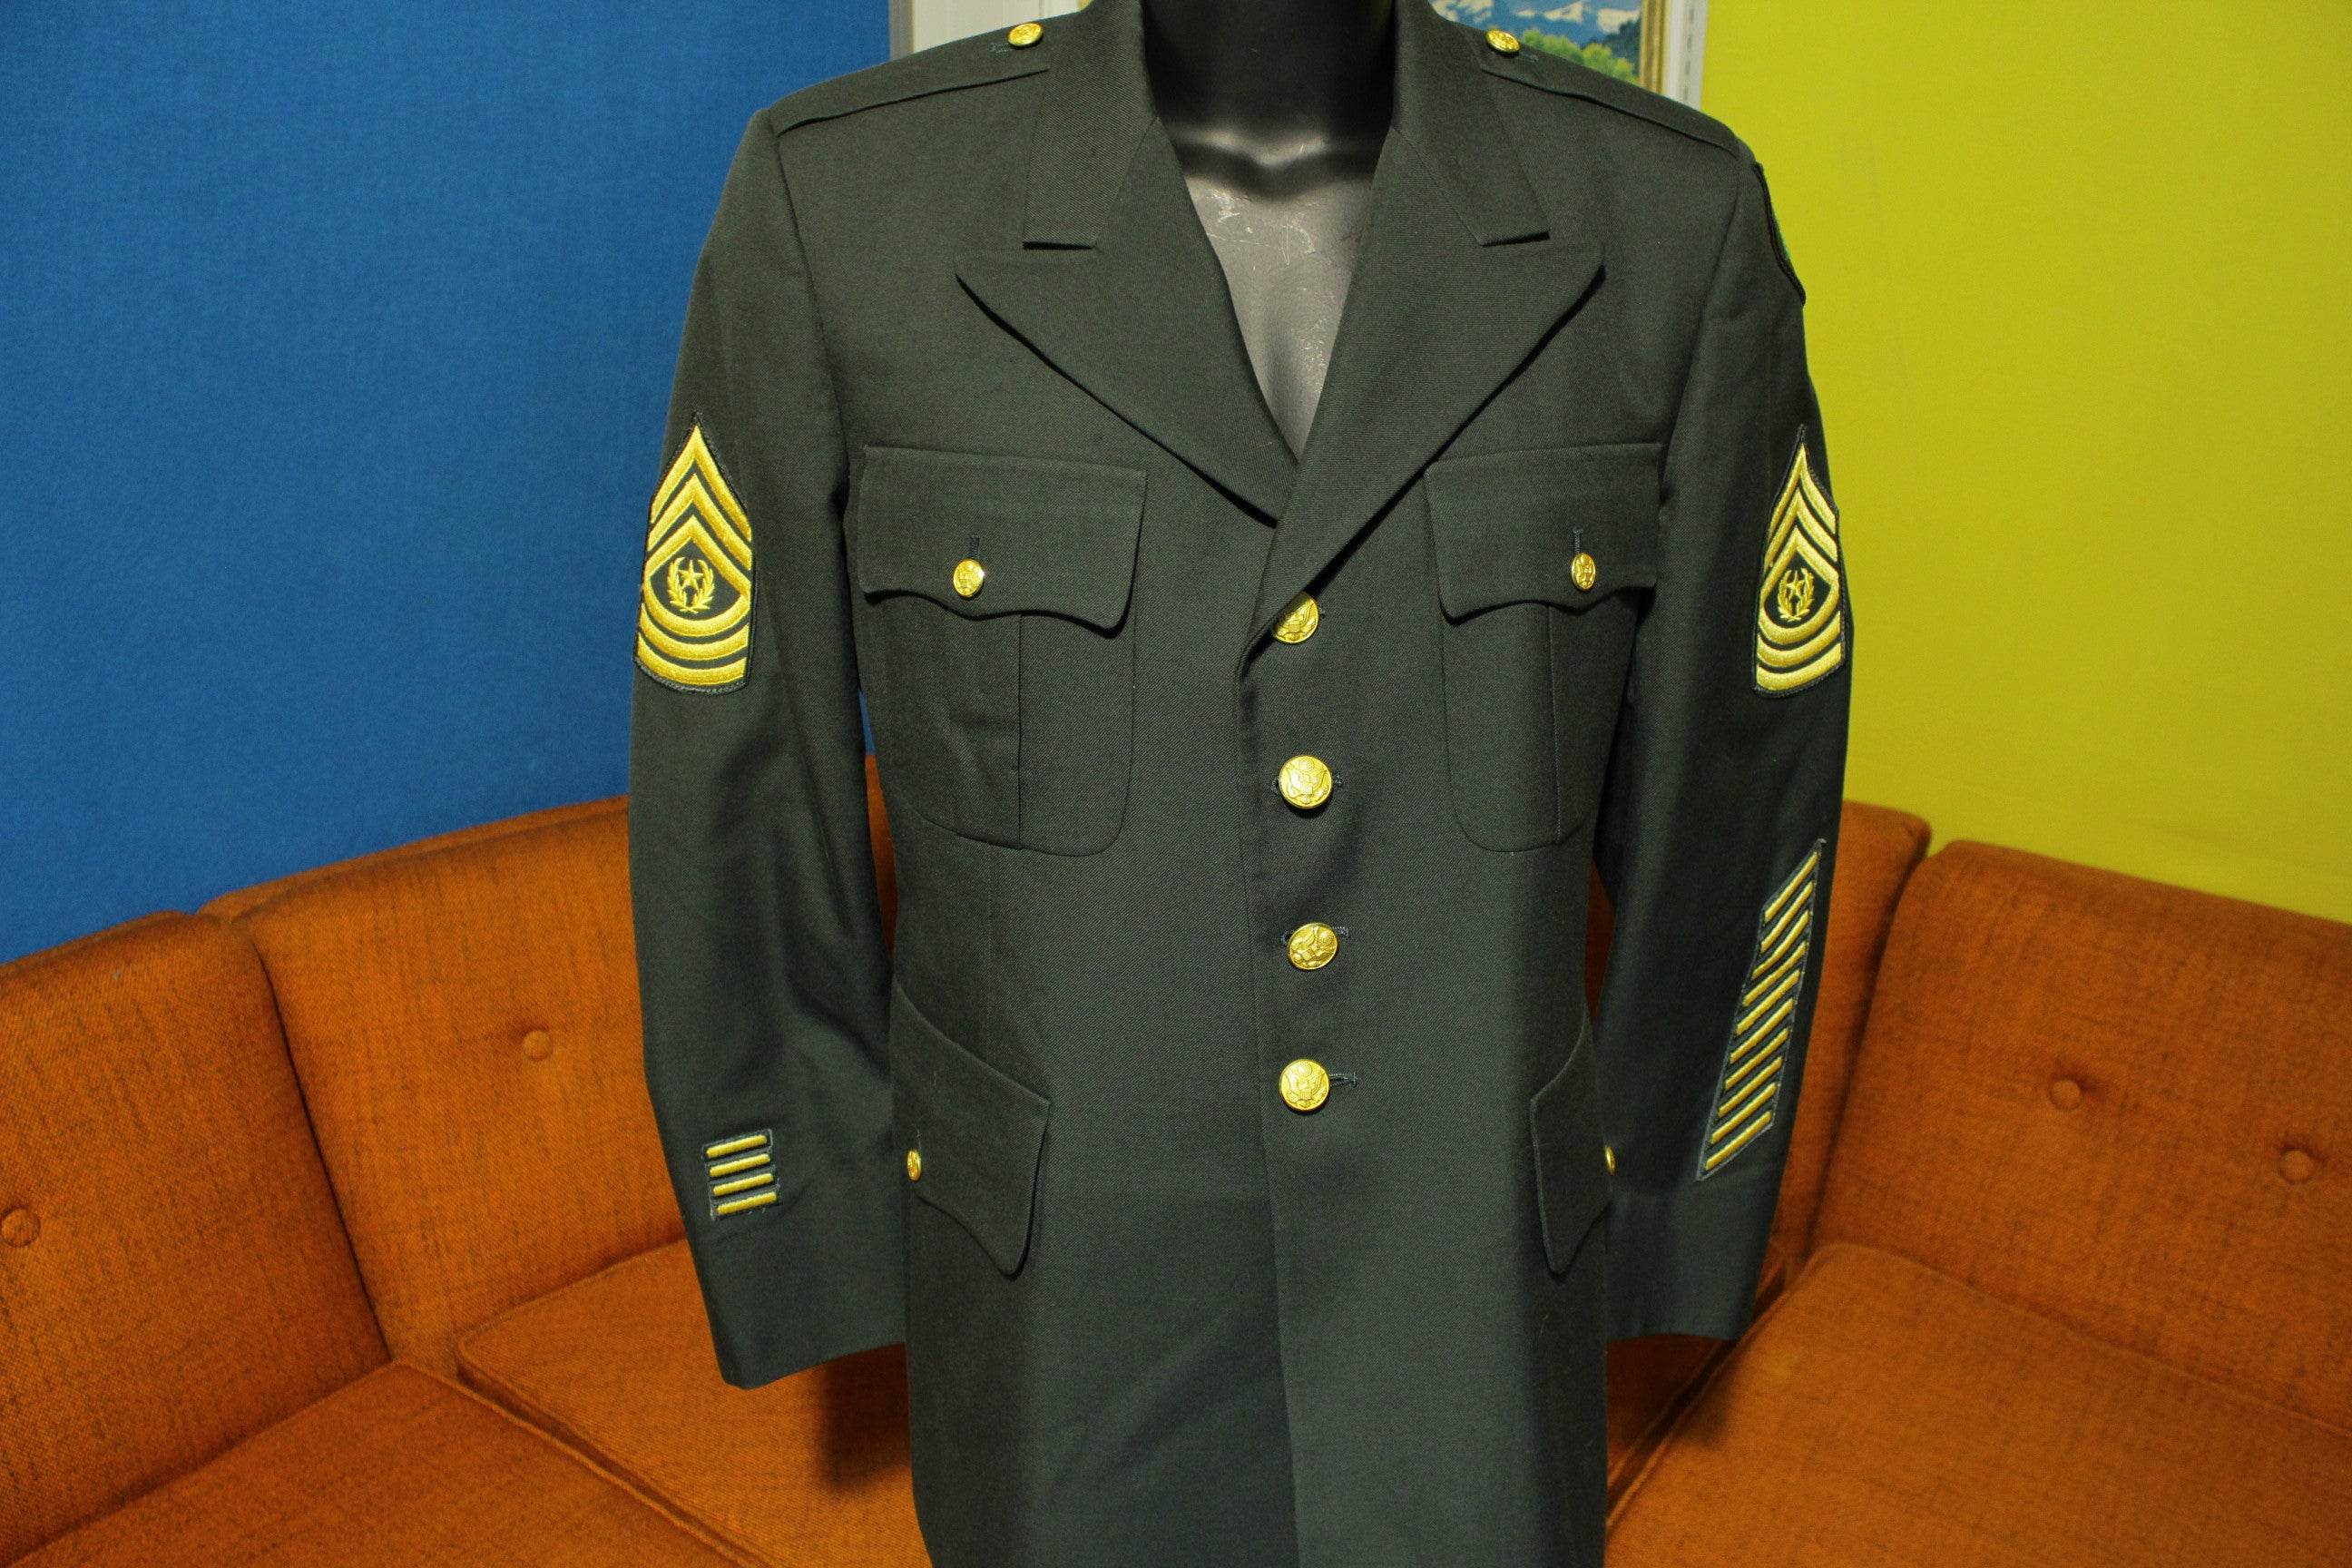 Army Blues Dress Uniform Green Suit Jacket w/ Patches Rank 91st Infantry Division